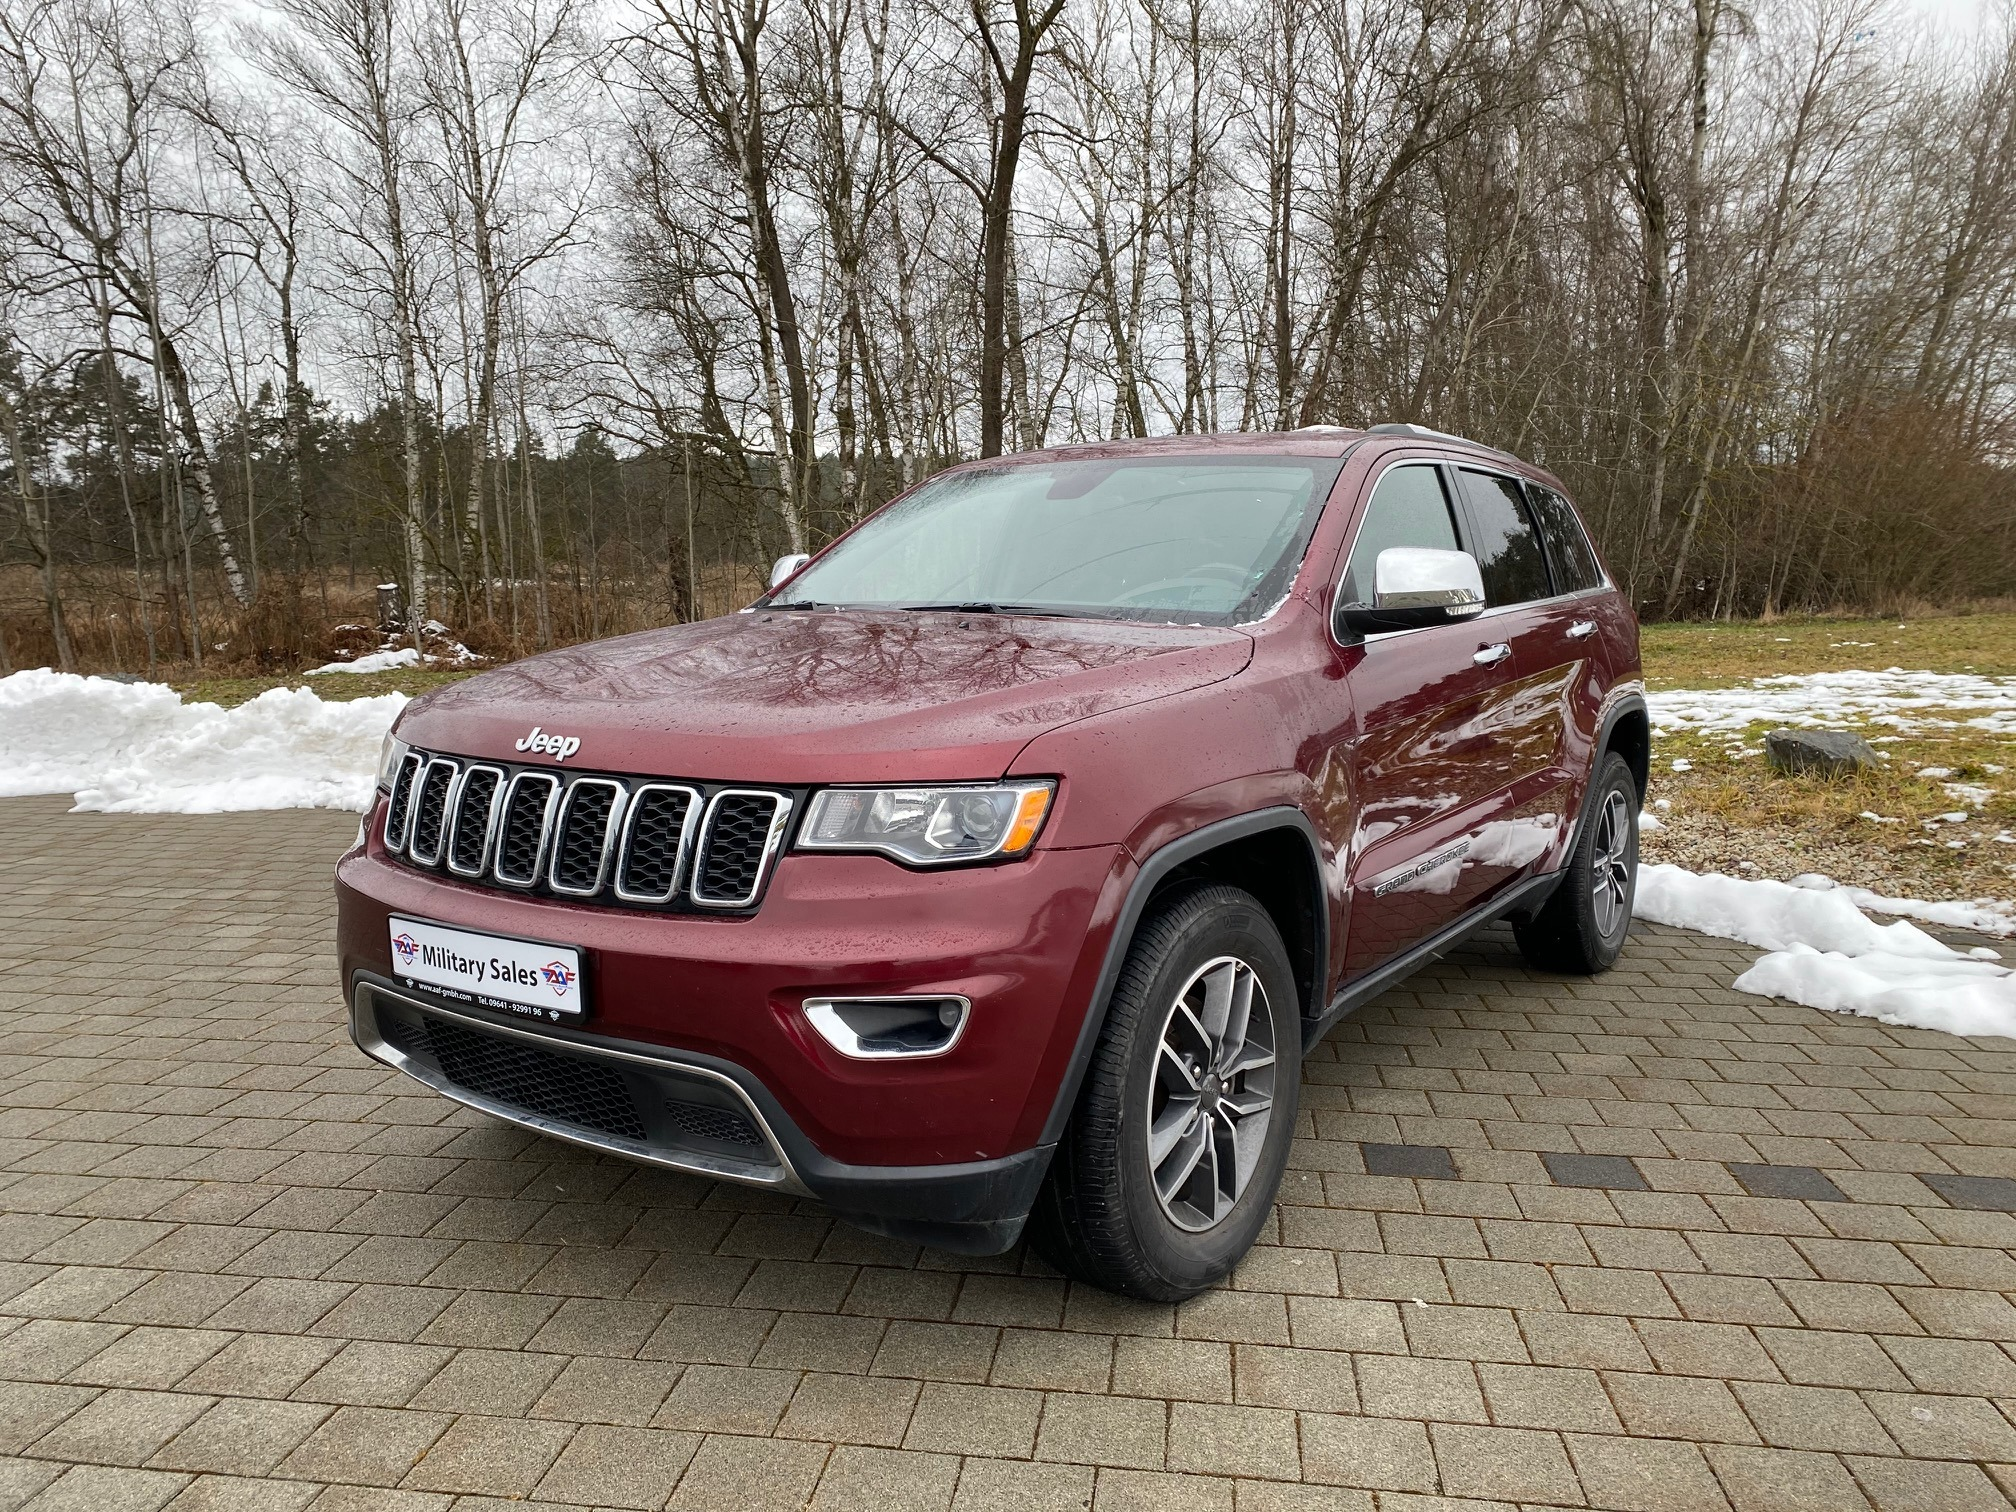 2019 Jeep Grand Cherokee Limited</br>as low as </br>$269 per paycheck